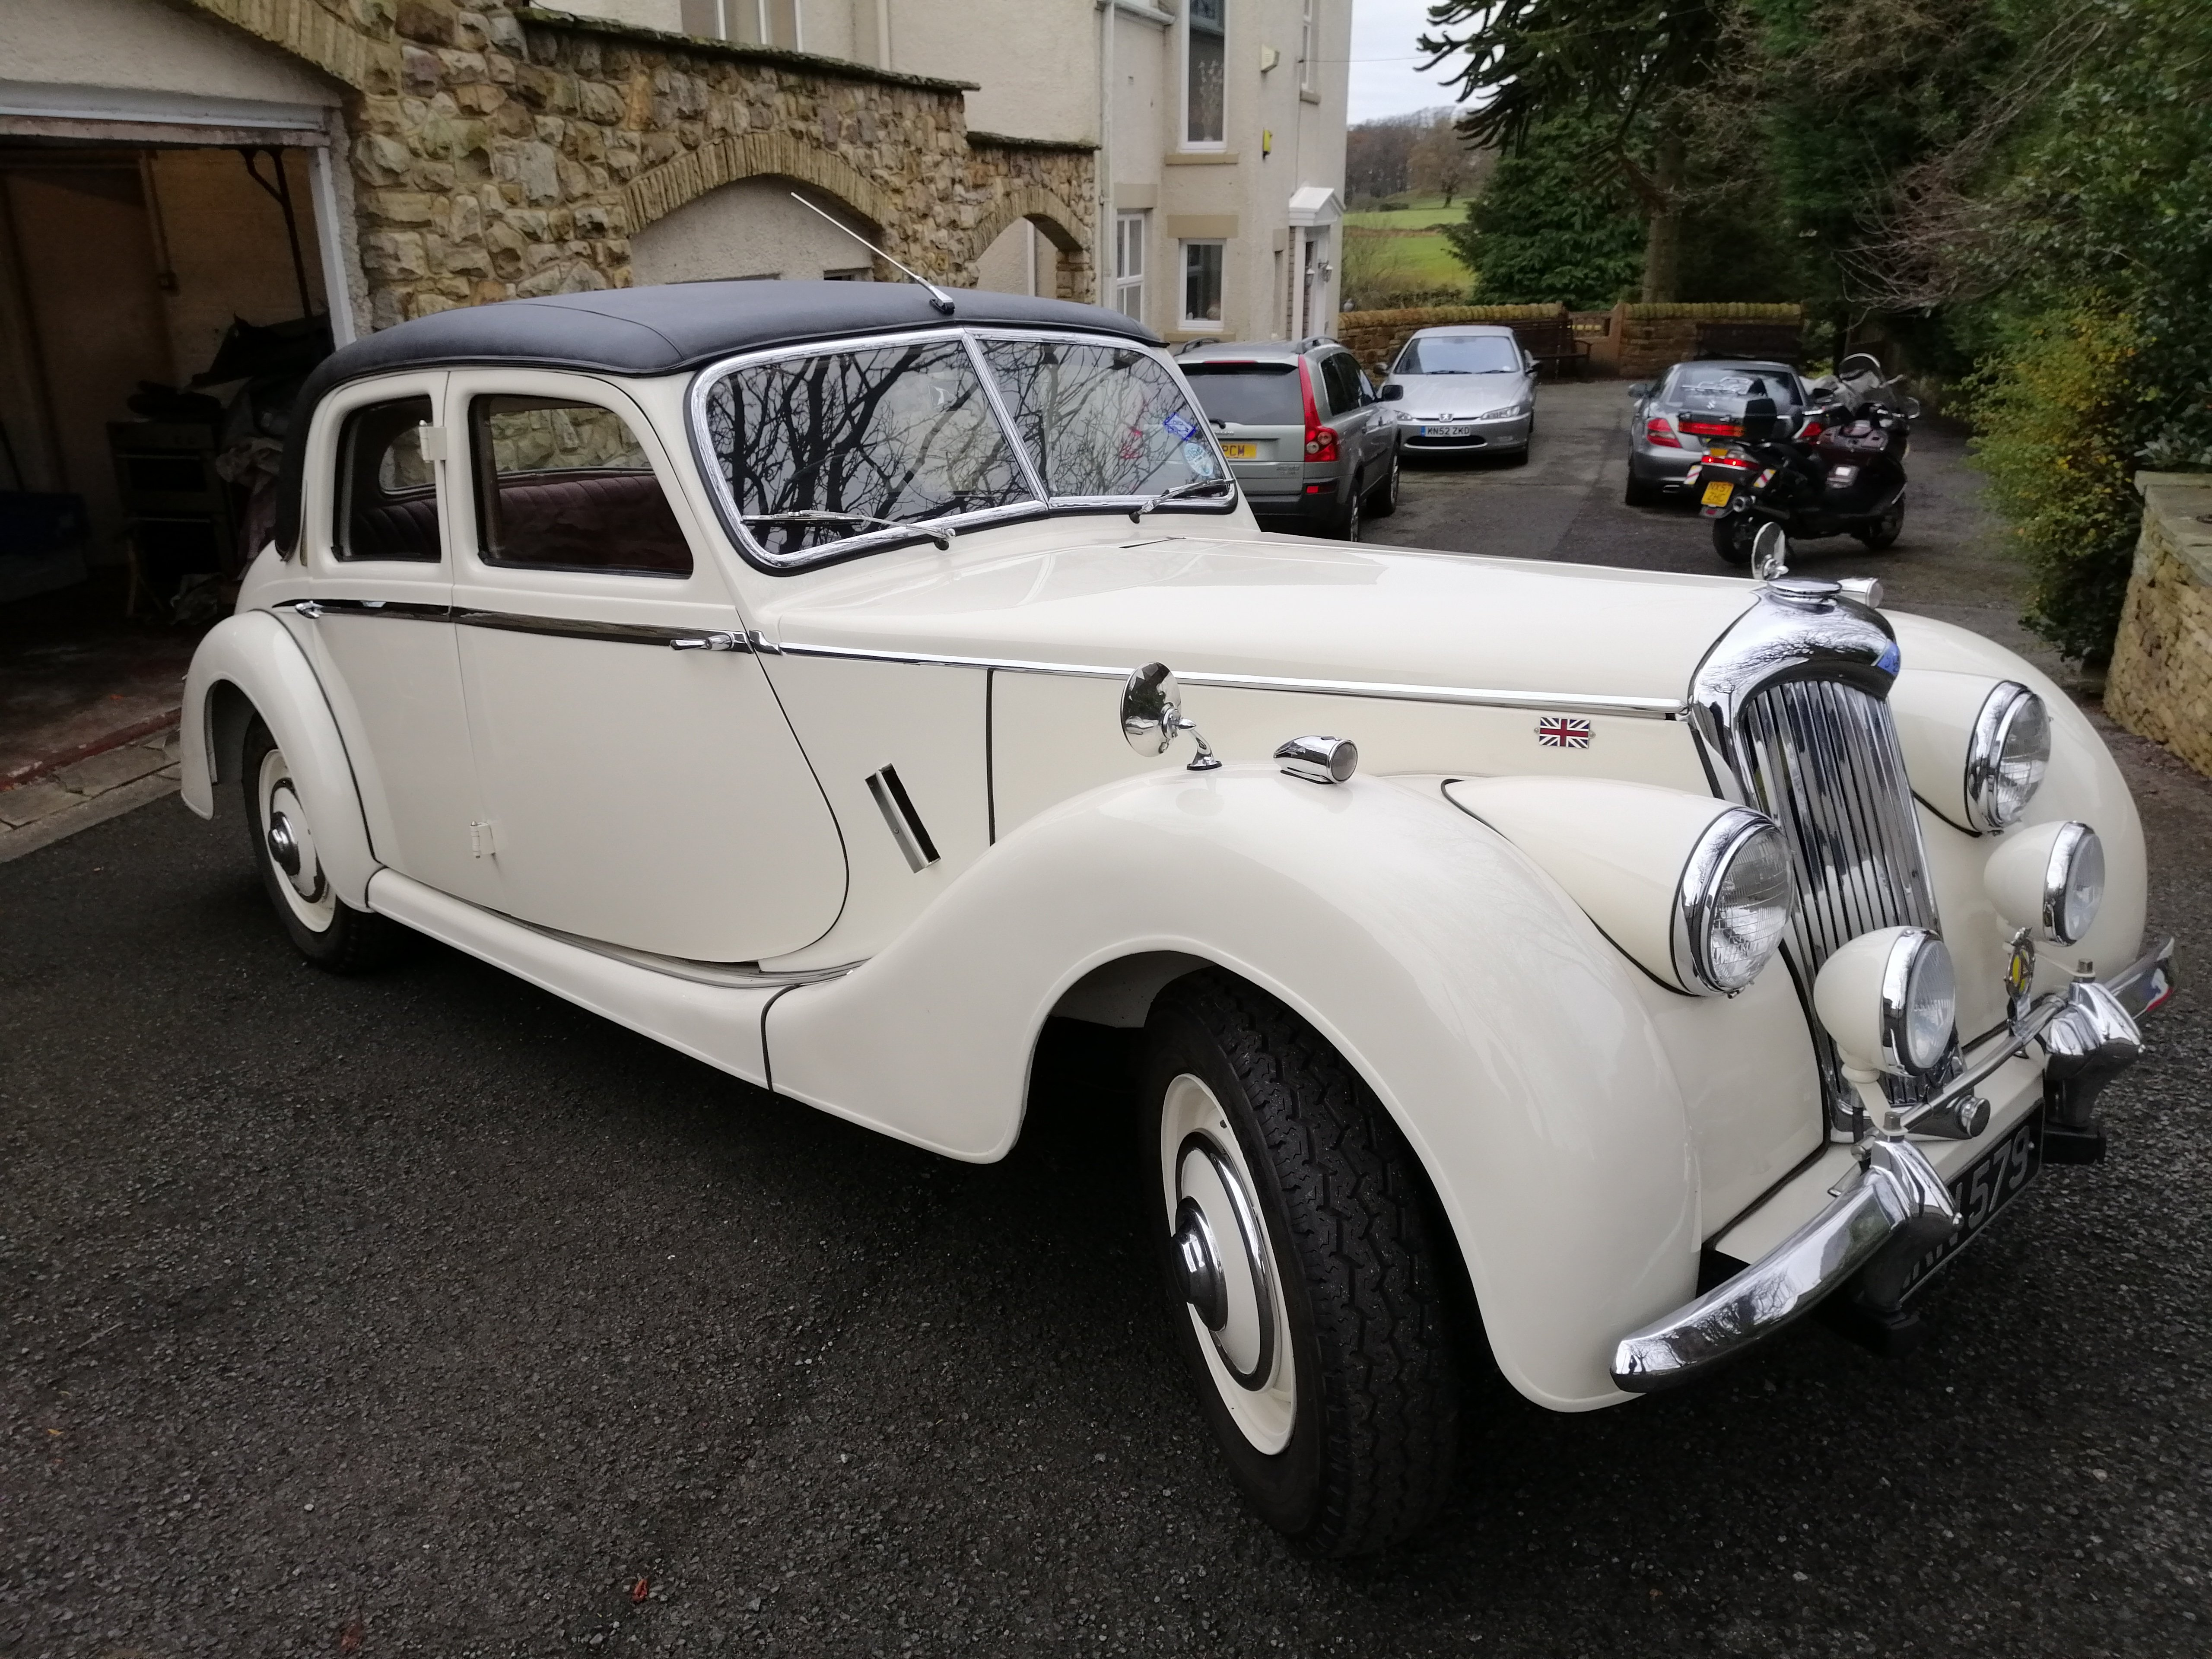 Picture of 1949 Riley classic full restoration